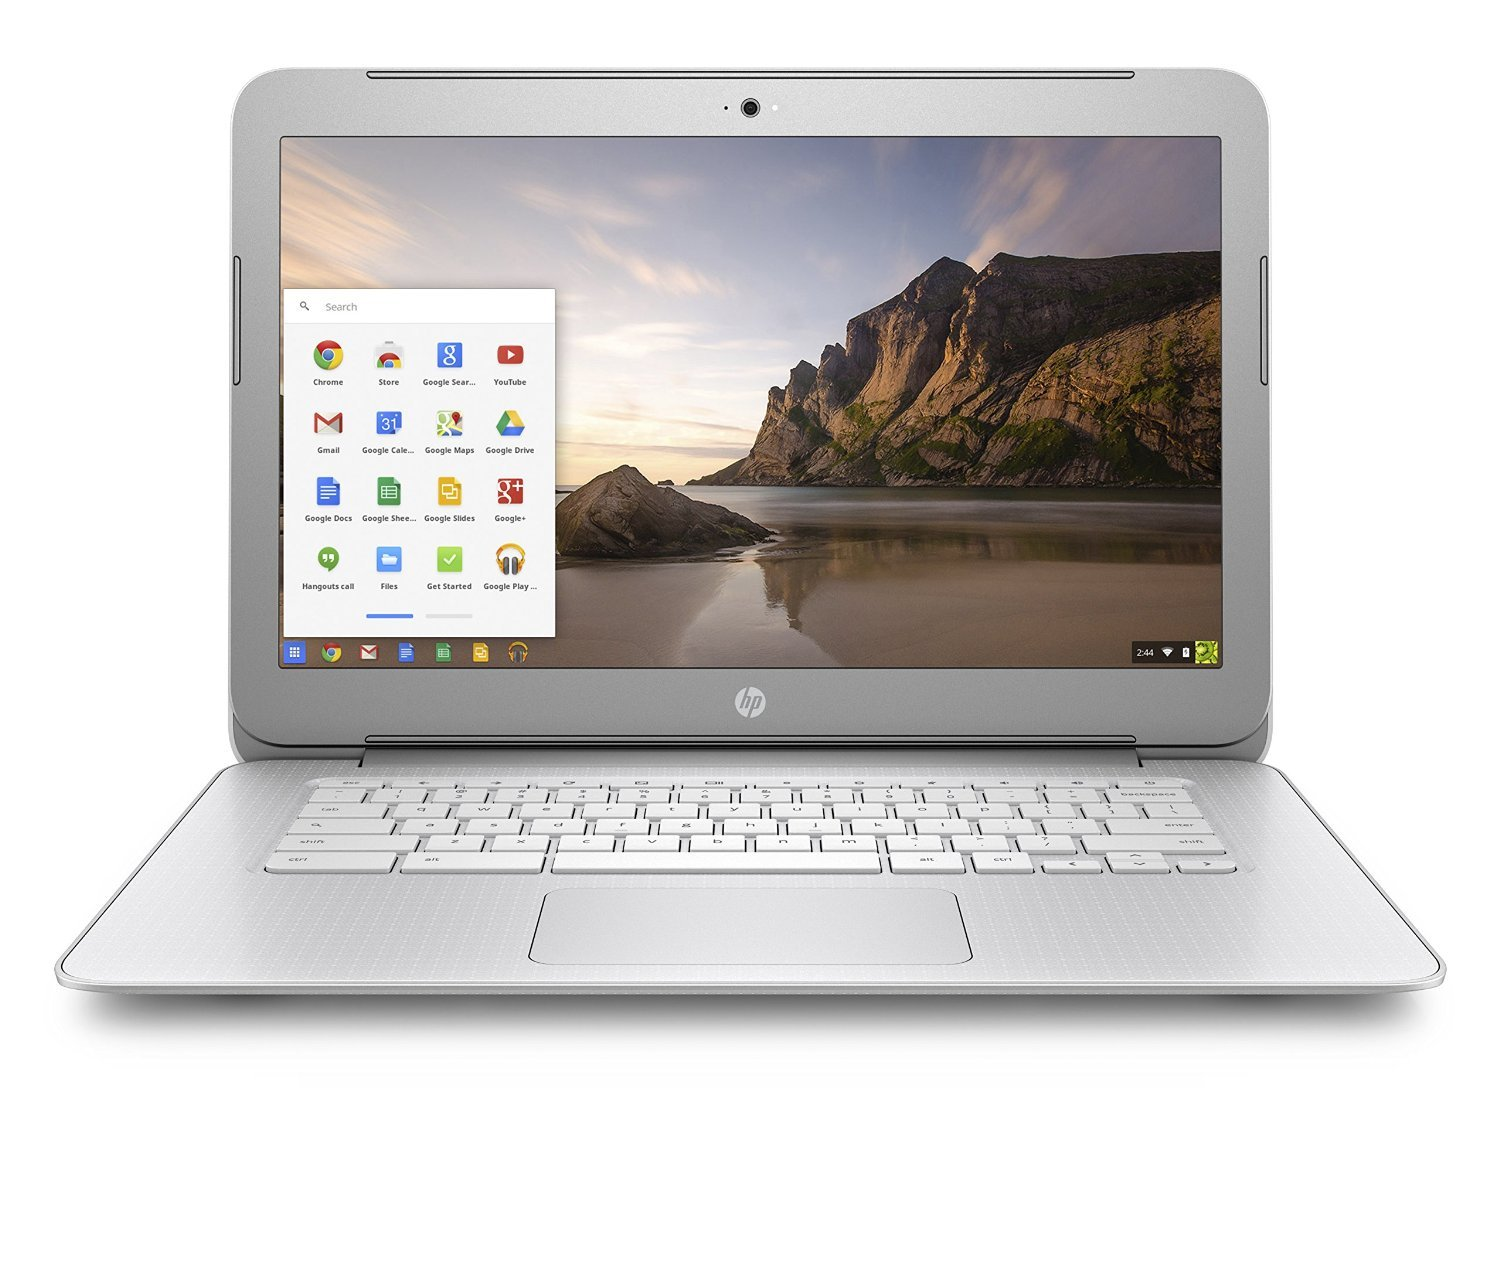 2018 Newest Renewed HP 14in Business Chromebook-Intel Celeron Dual-Core Up  to 2 58 GHz Processor, 4GB RAM, 16GB SSD, Intel HD Graphics, HDMI, WiFi,